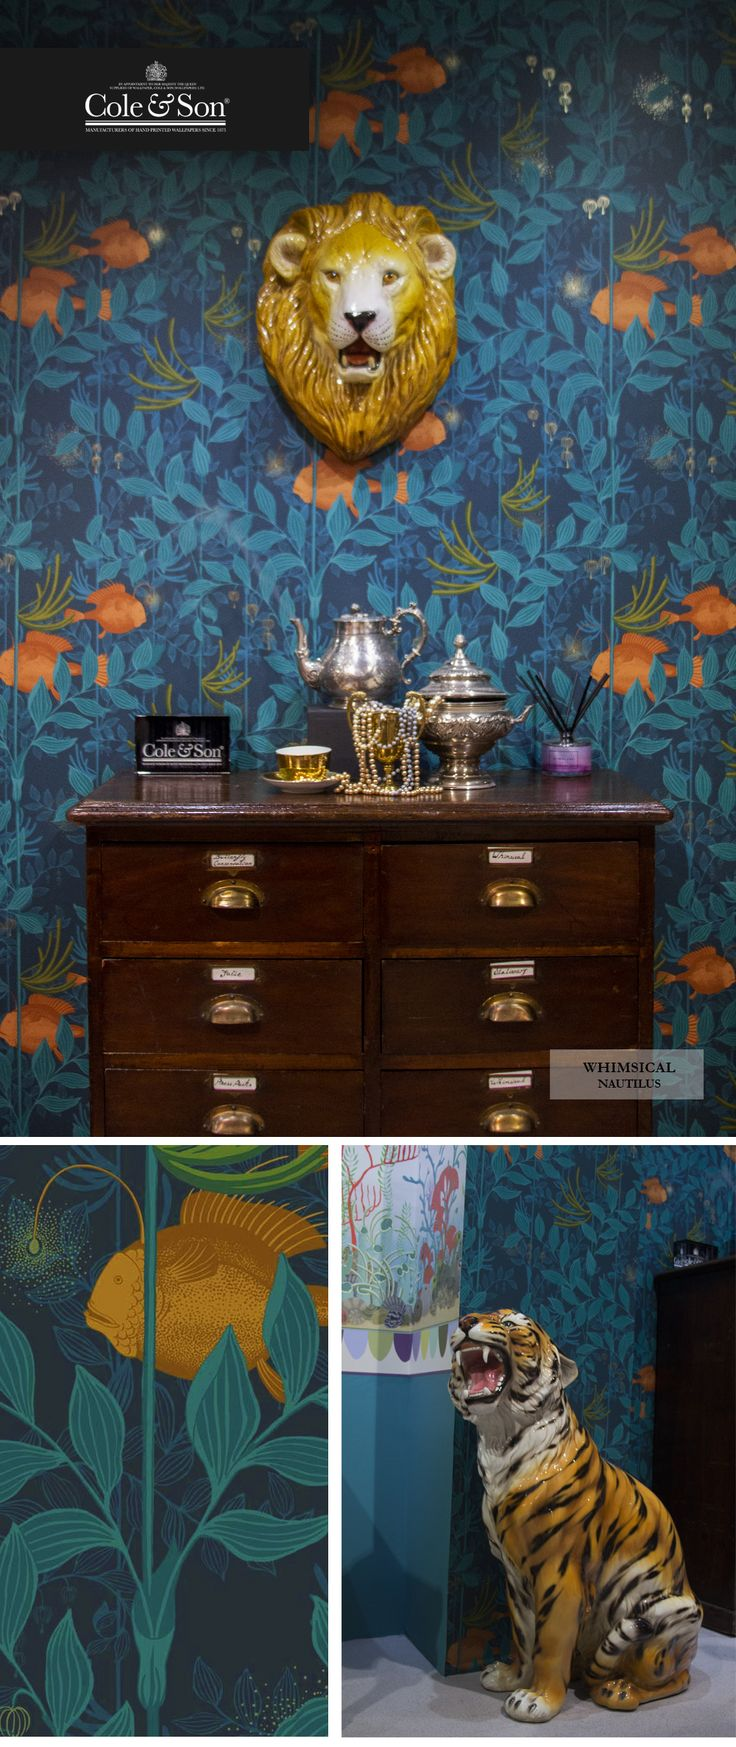 45 best images about whimsical on pinterest star wallpaper sons and cole and son. Black Bedroom Furniture Sets. Home Design Ideas